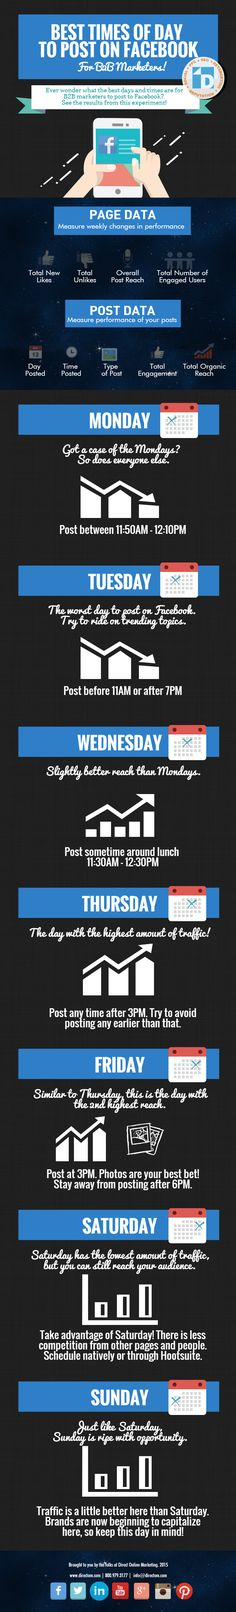 Social Media Infographic: The Best Times of Day to Post on Facebook for B2B Marketers.  Check out the blog post by Stephen!